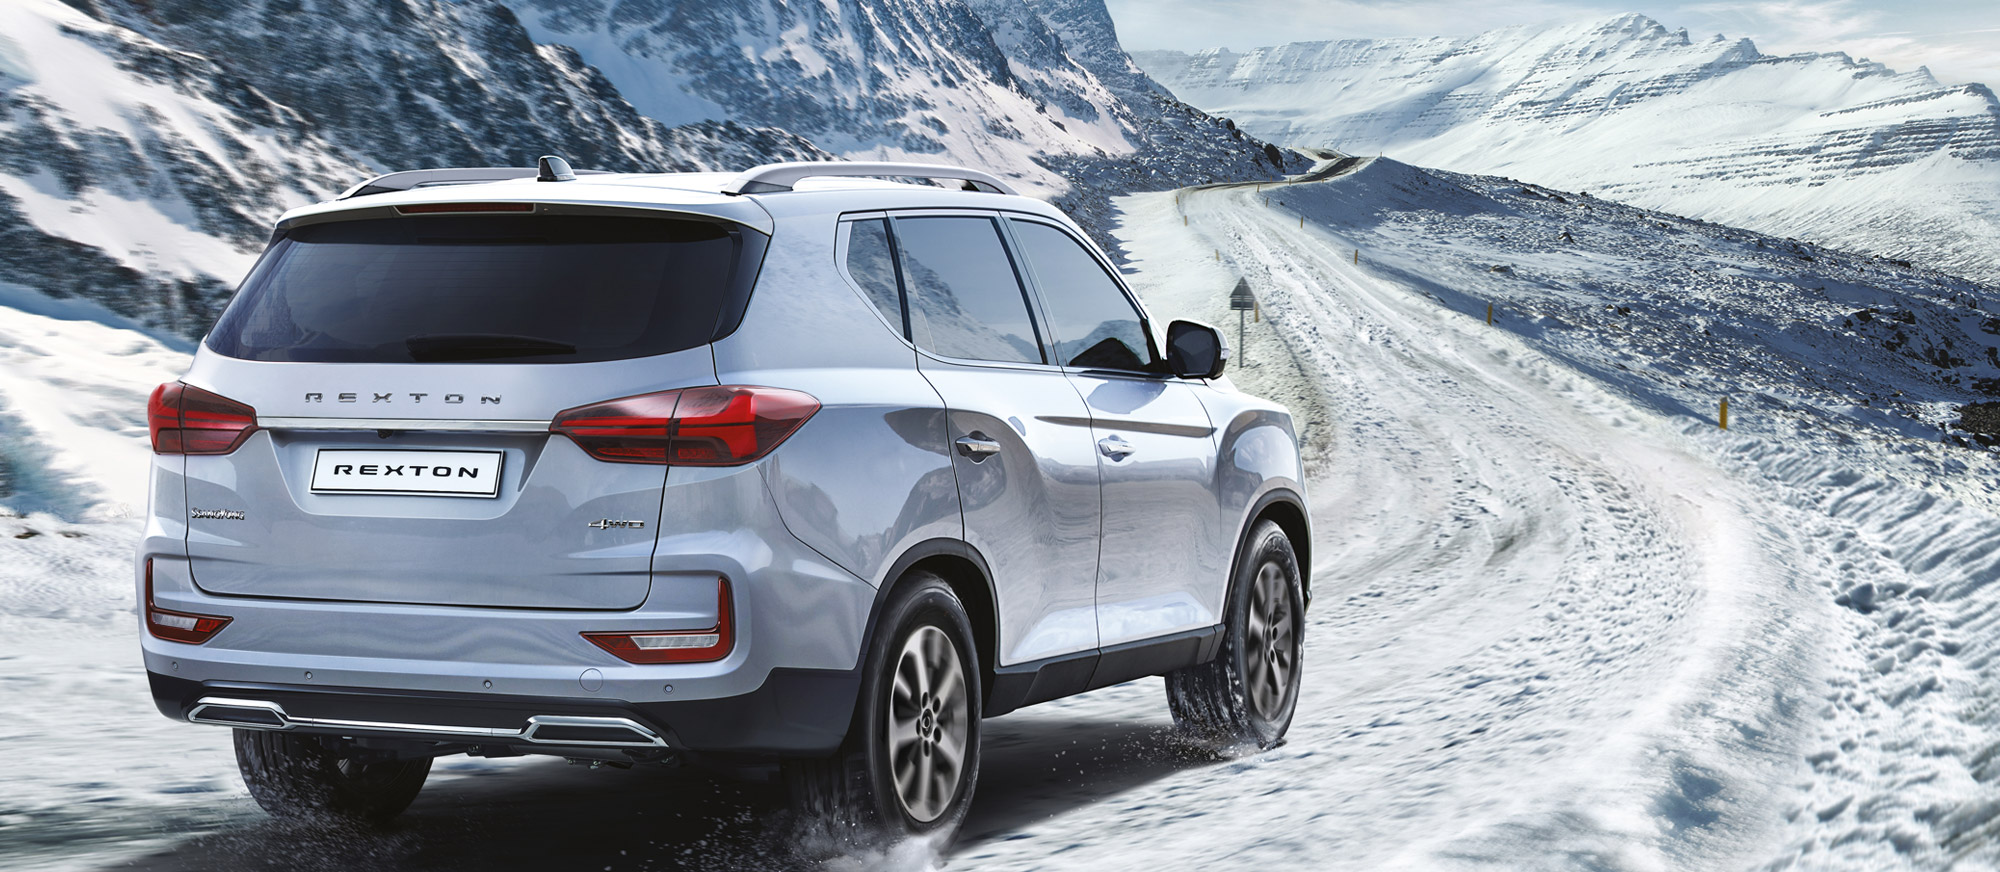 rexton Power and capability